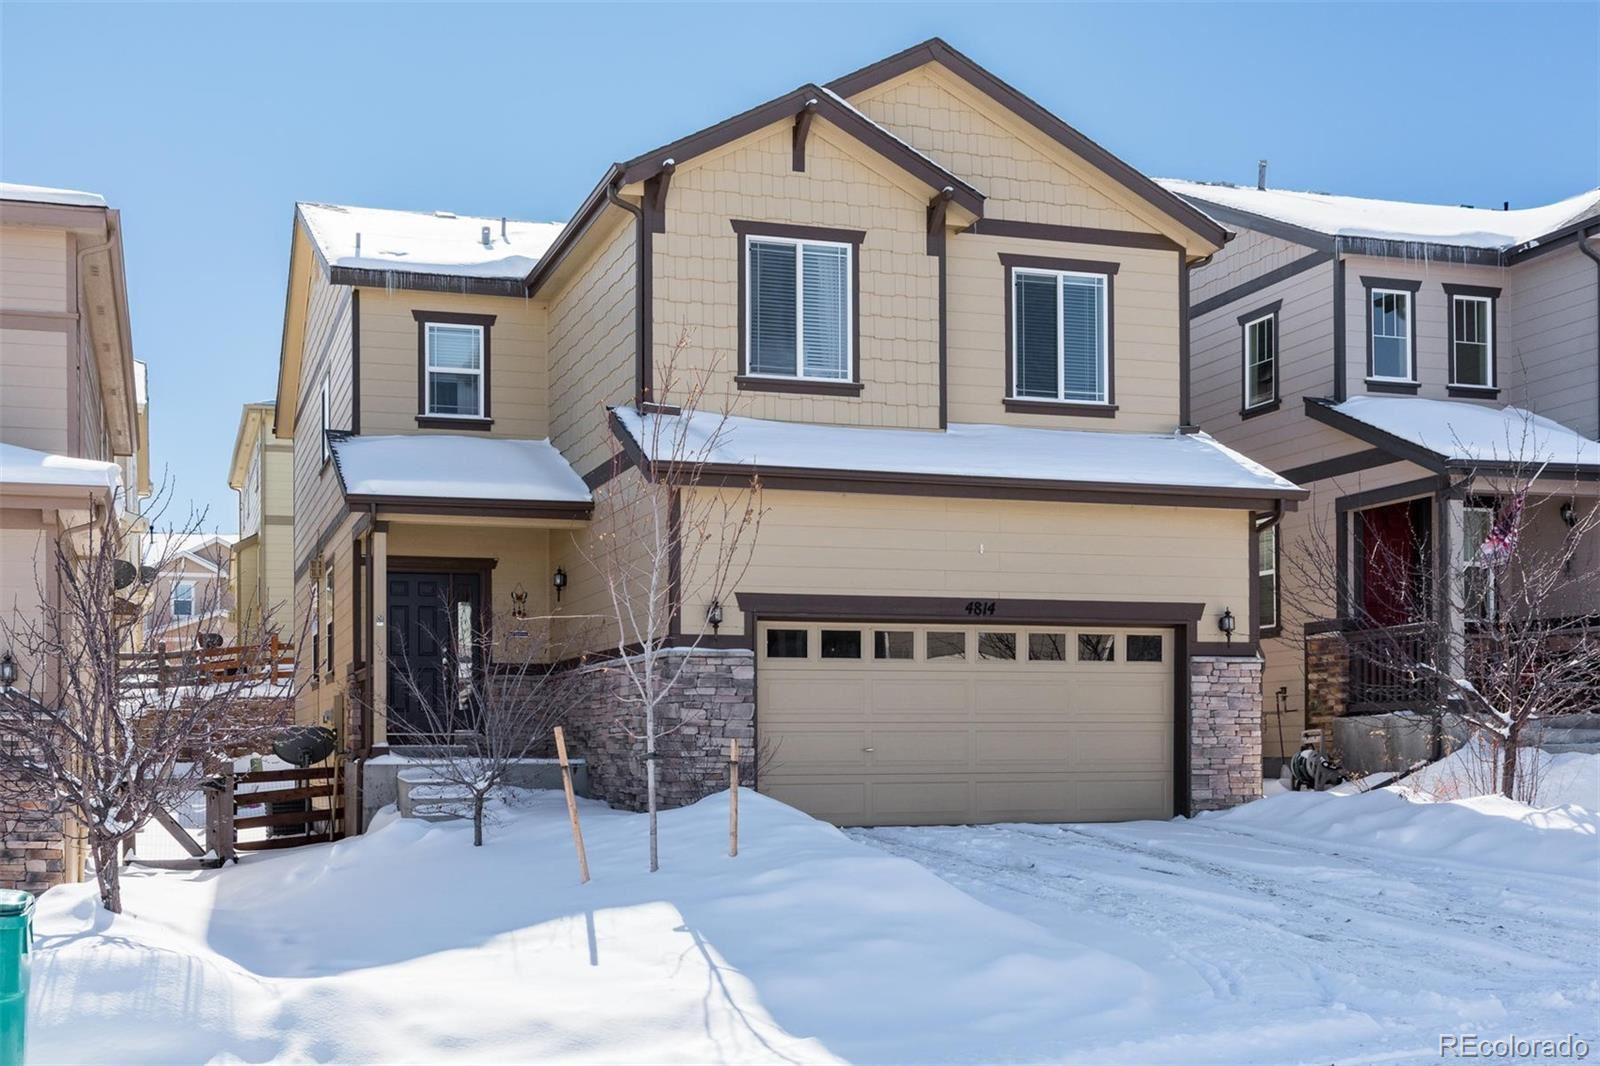 4814 S Picadilly Court, Aurora, CO 80015 - #: 8035599